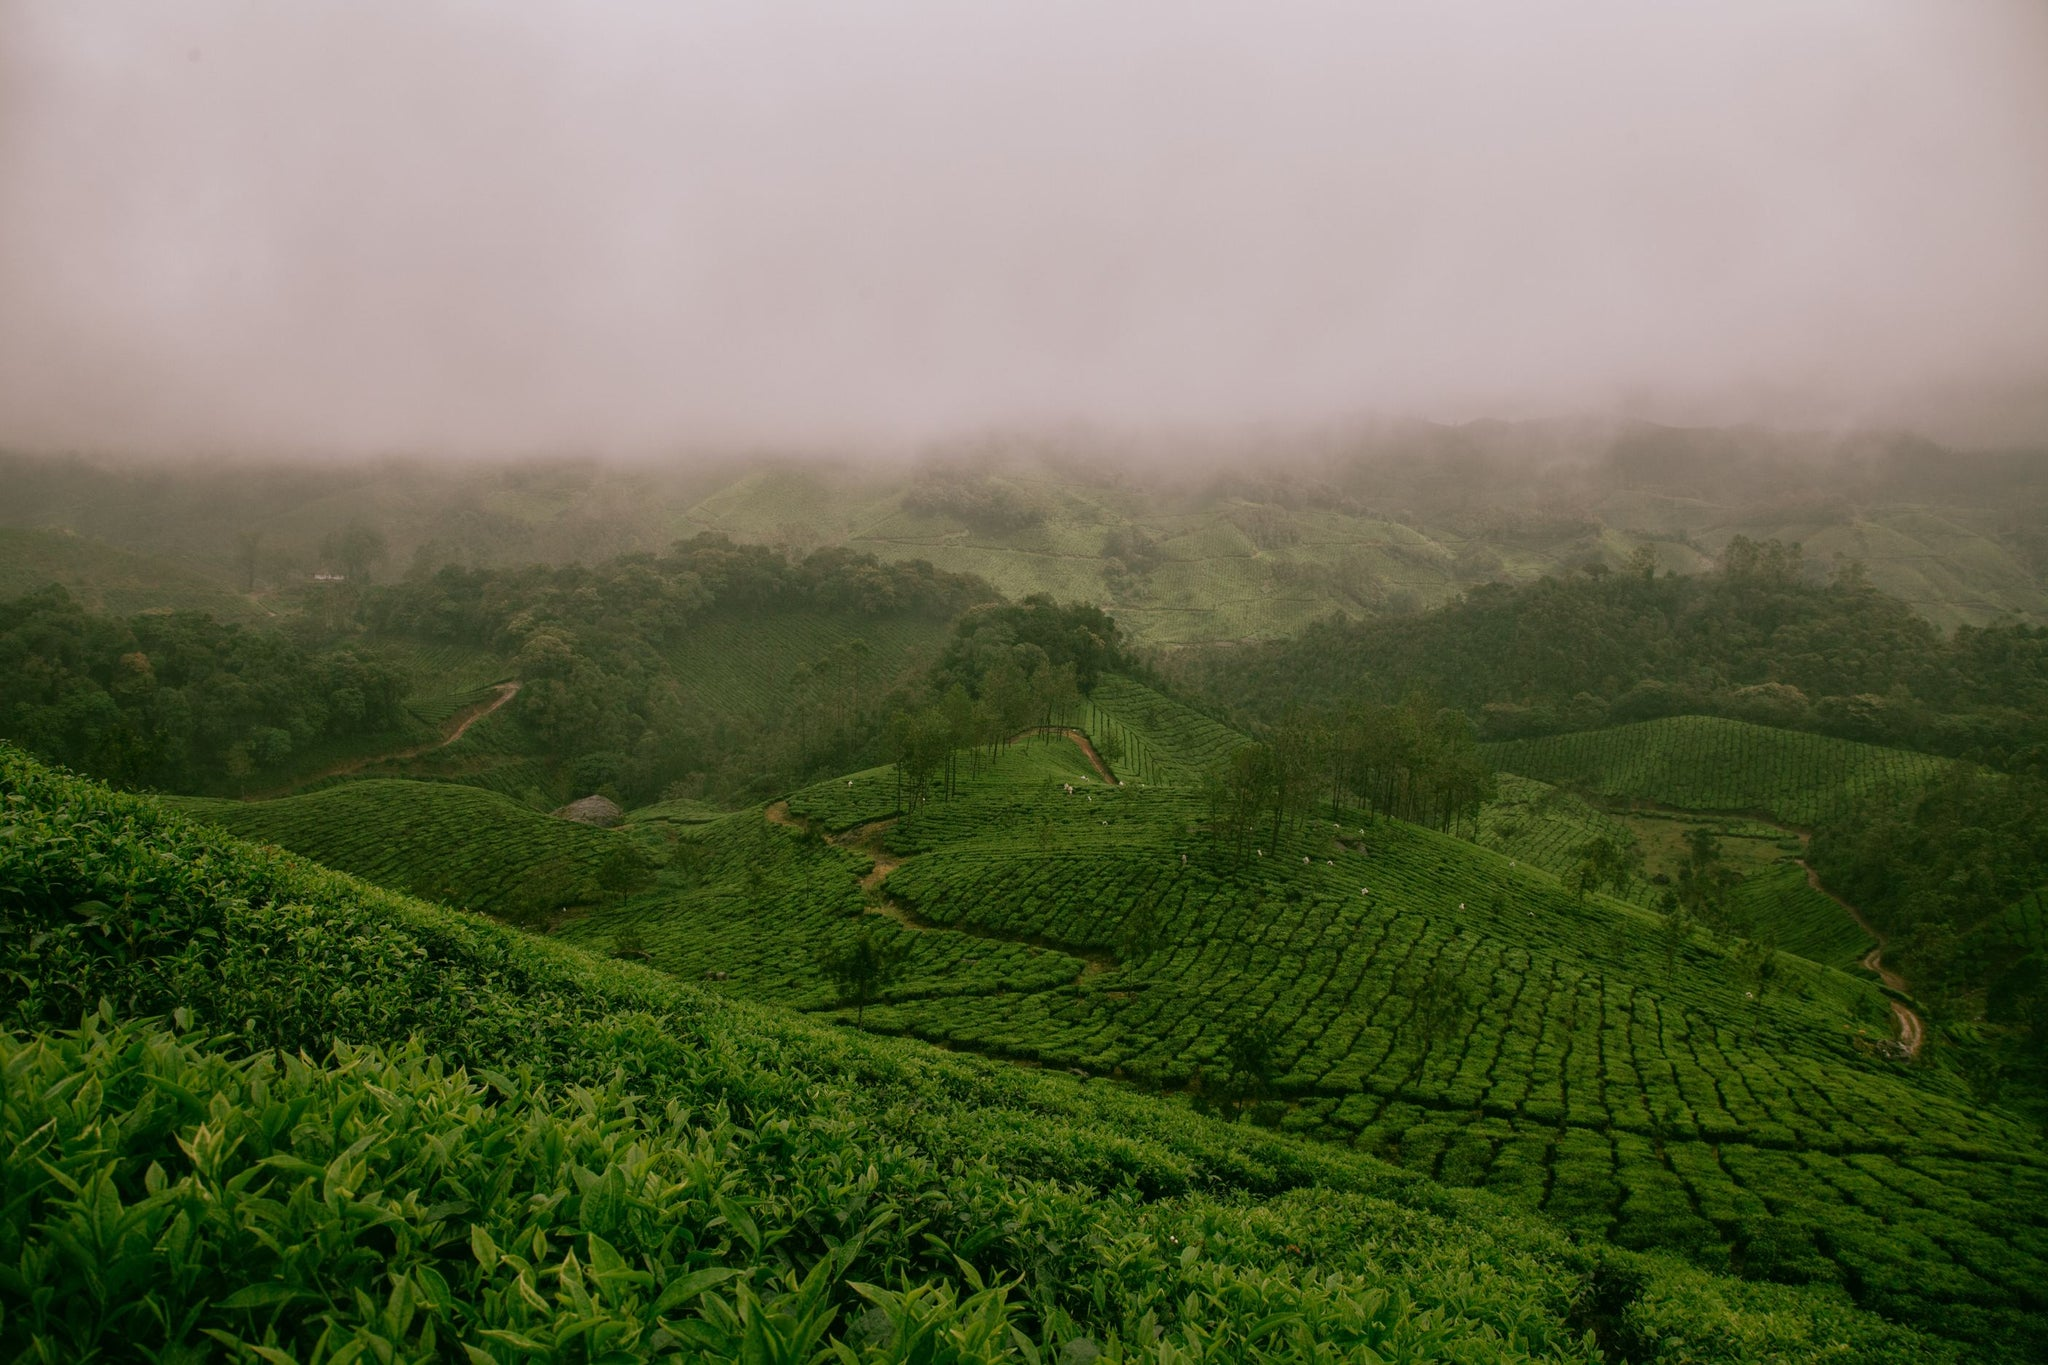 Foggy field of loose leaf tea